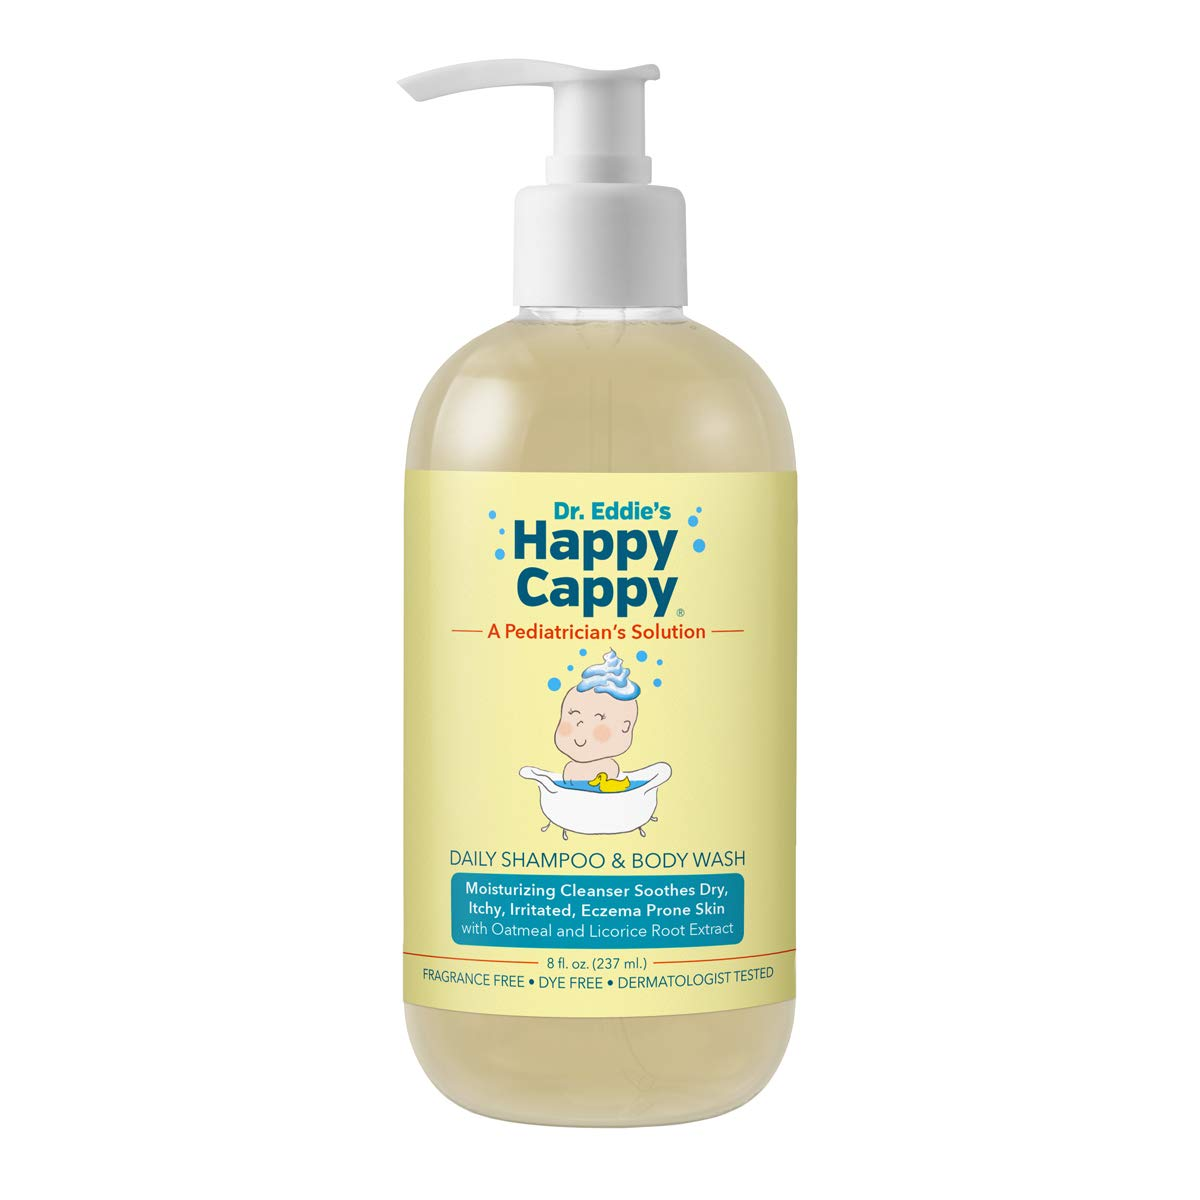 Dr. Eddie's Happy Cappy Daily Shampoo & Body Wash for Children, Soothes Dry, Itchy, Sensitive, Eczema Prone Skin, Dermatologist Tested, No Fragrance, No Dye, 8 oz